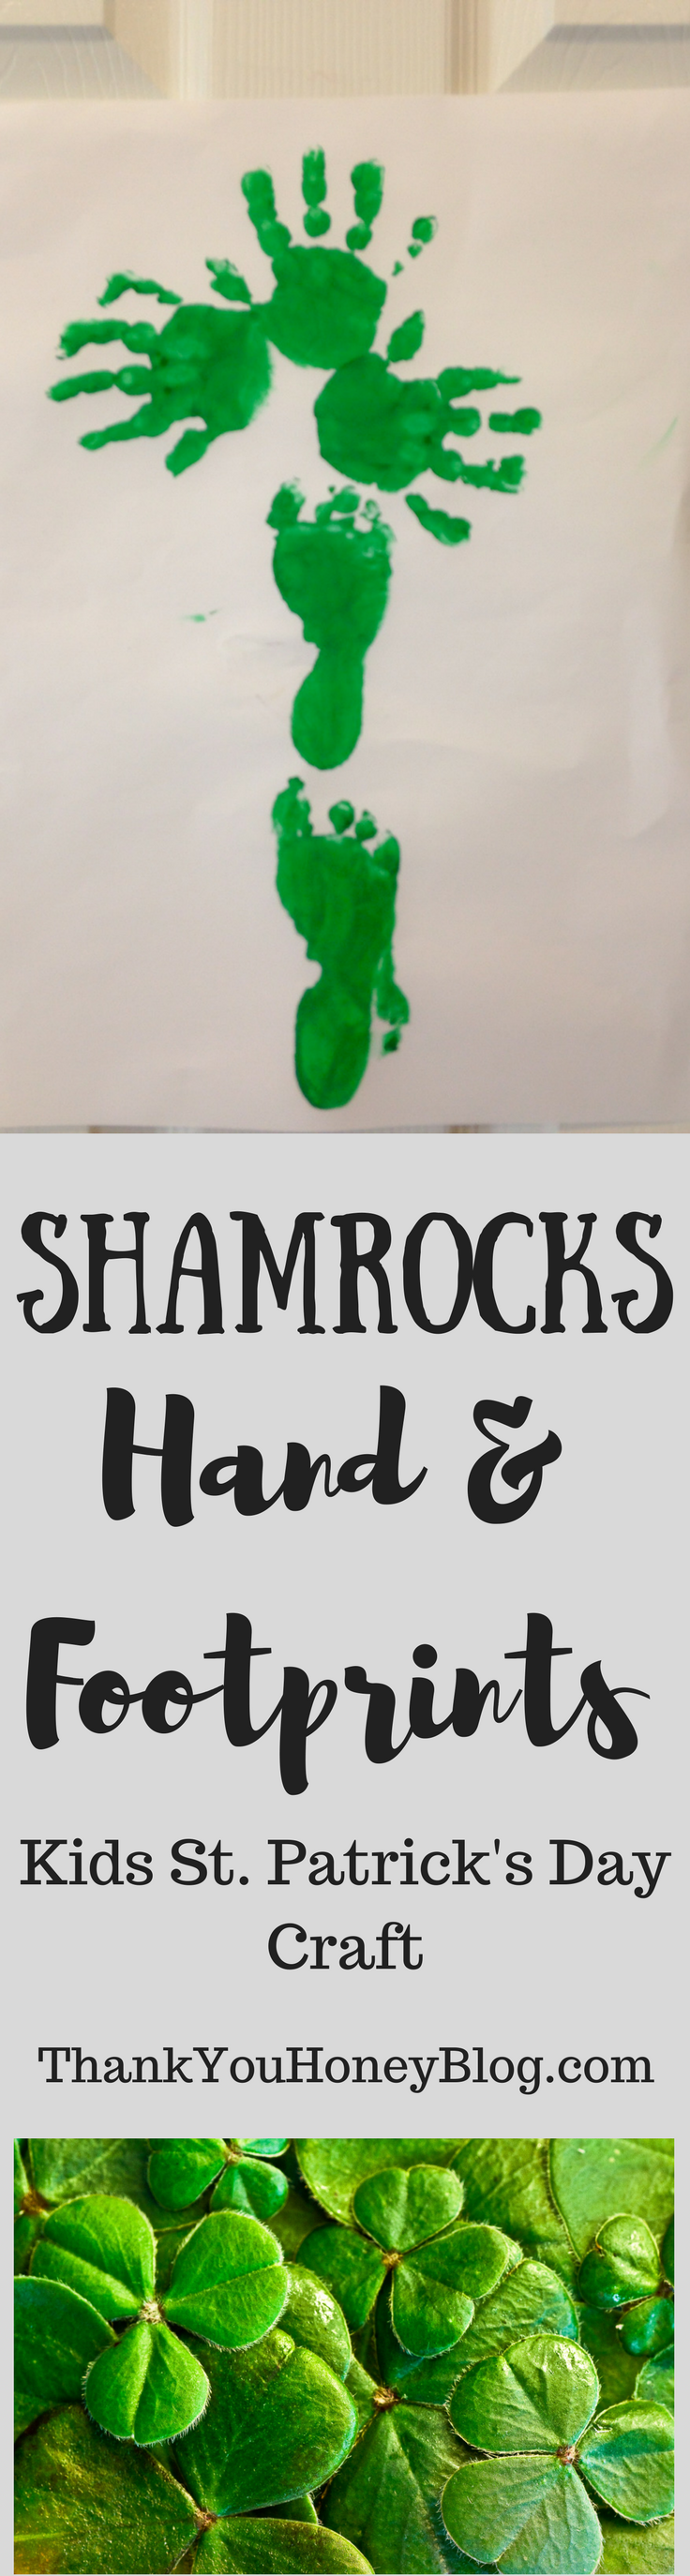 Shamrock Hand & Footprints